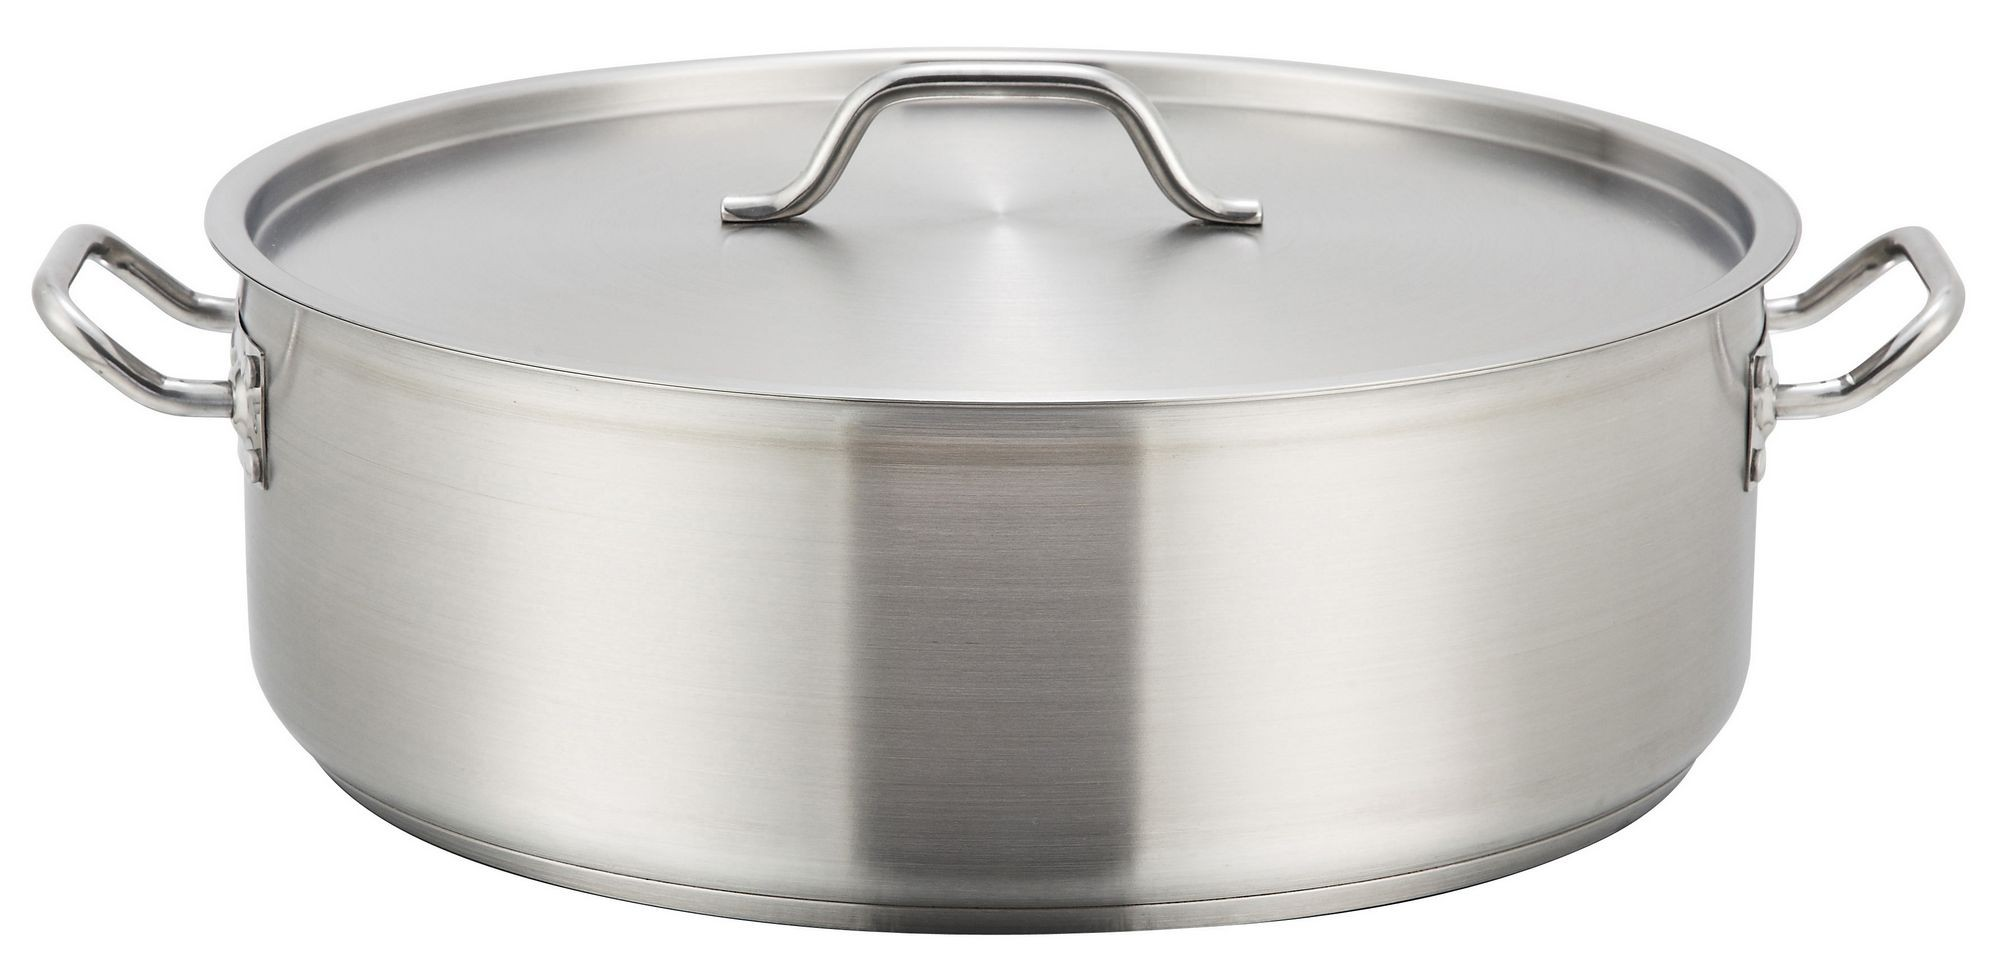 Winco sslb-25 Stainless Steel 25 Qt. Brazier with Lid